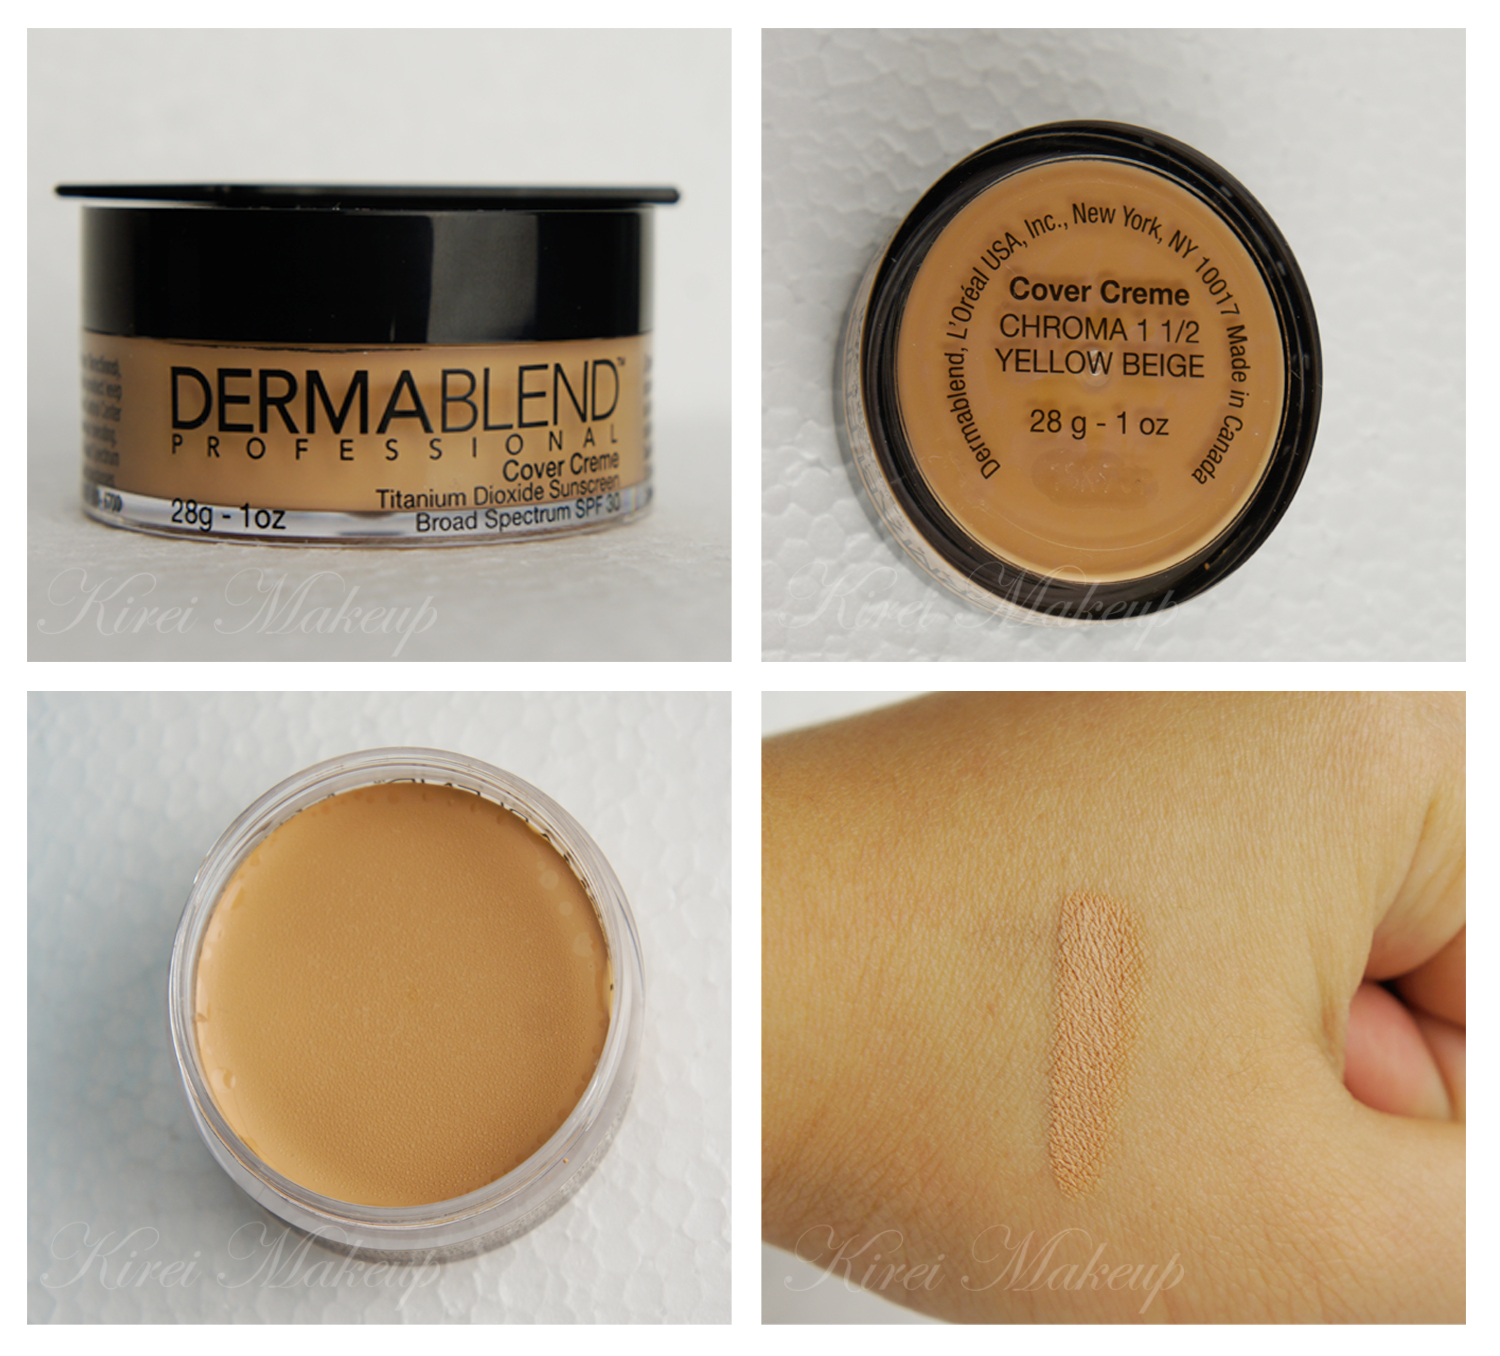 Dermablend cover creme video | My-Rome...